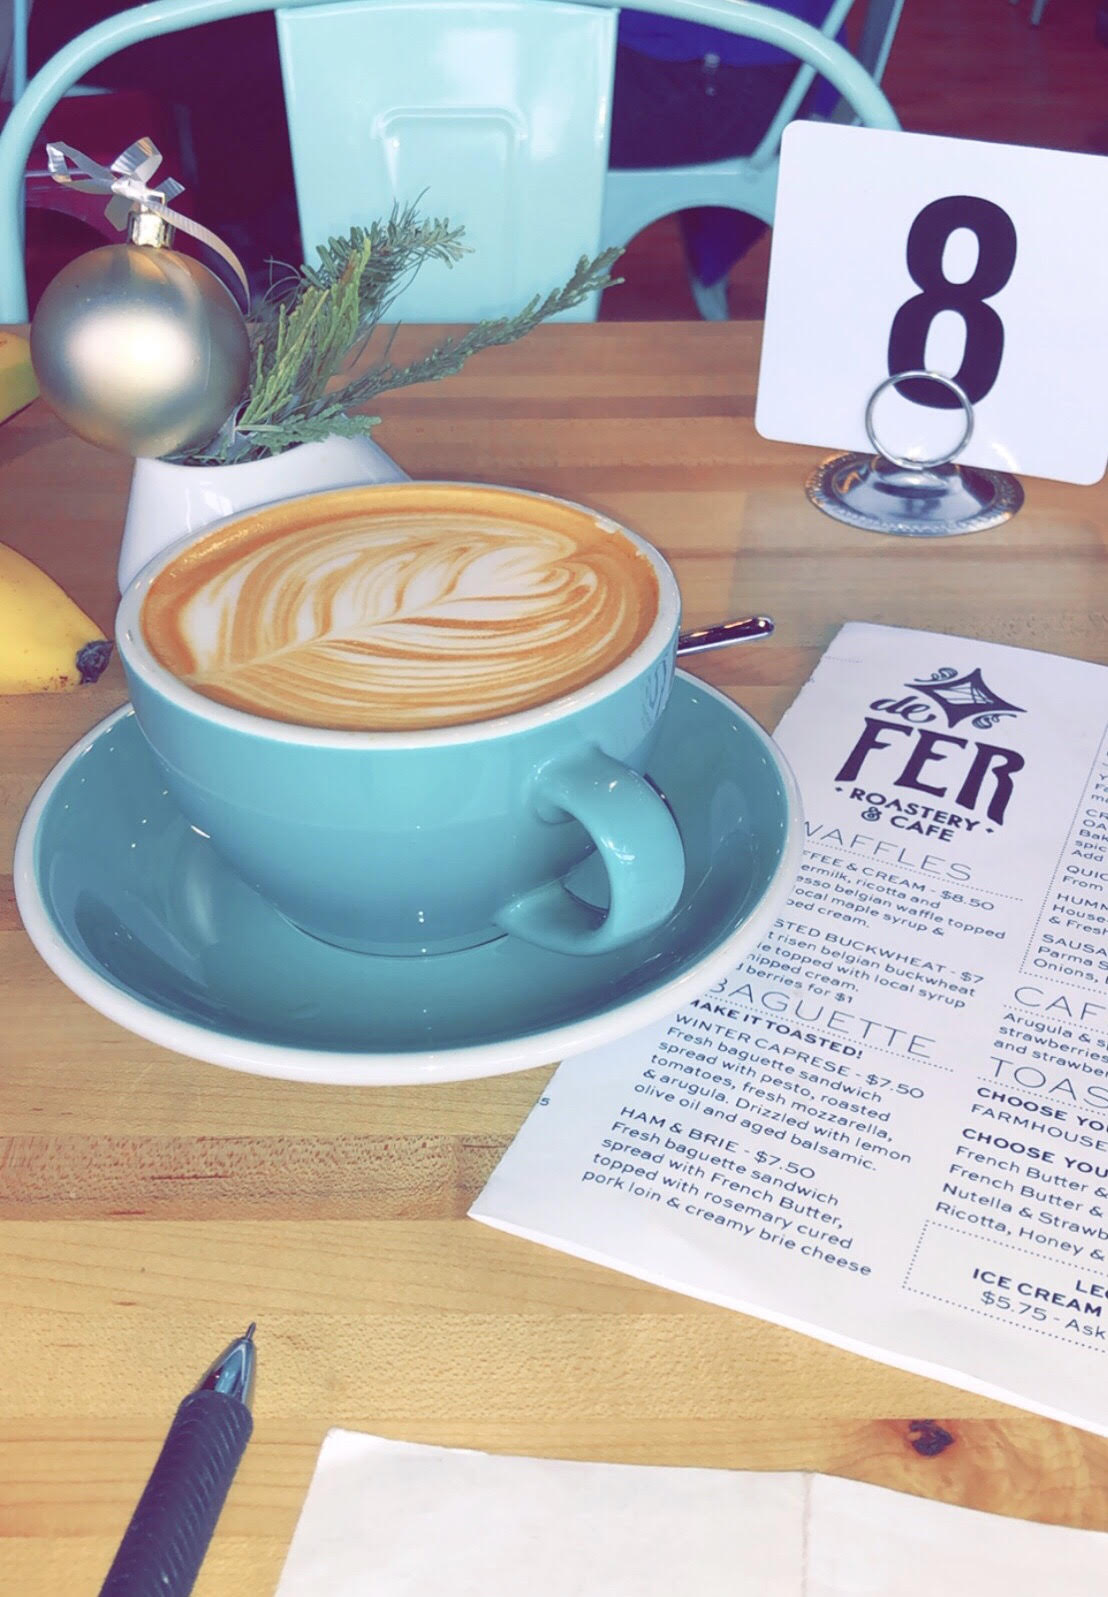 Coffee Shop de Fer Roastery & Café - Address 2002 Smallman St, Pittsburgh, PA 15222Established 2017